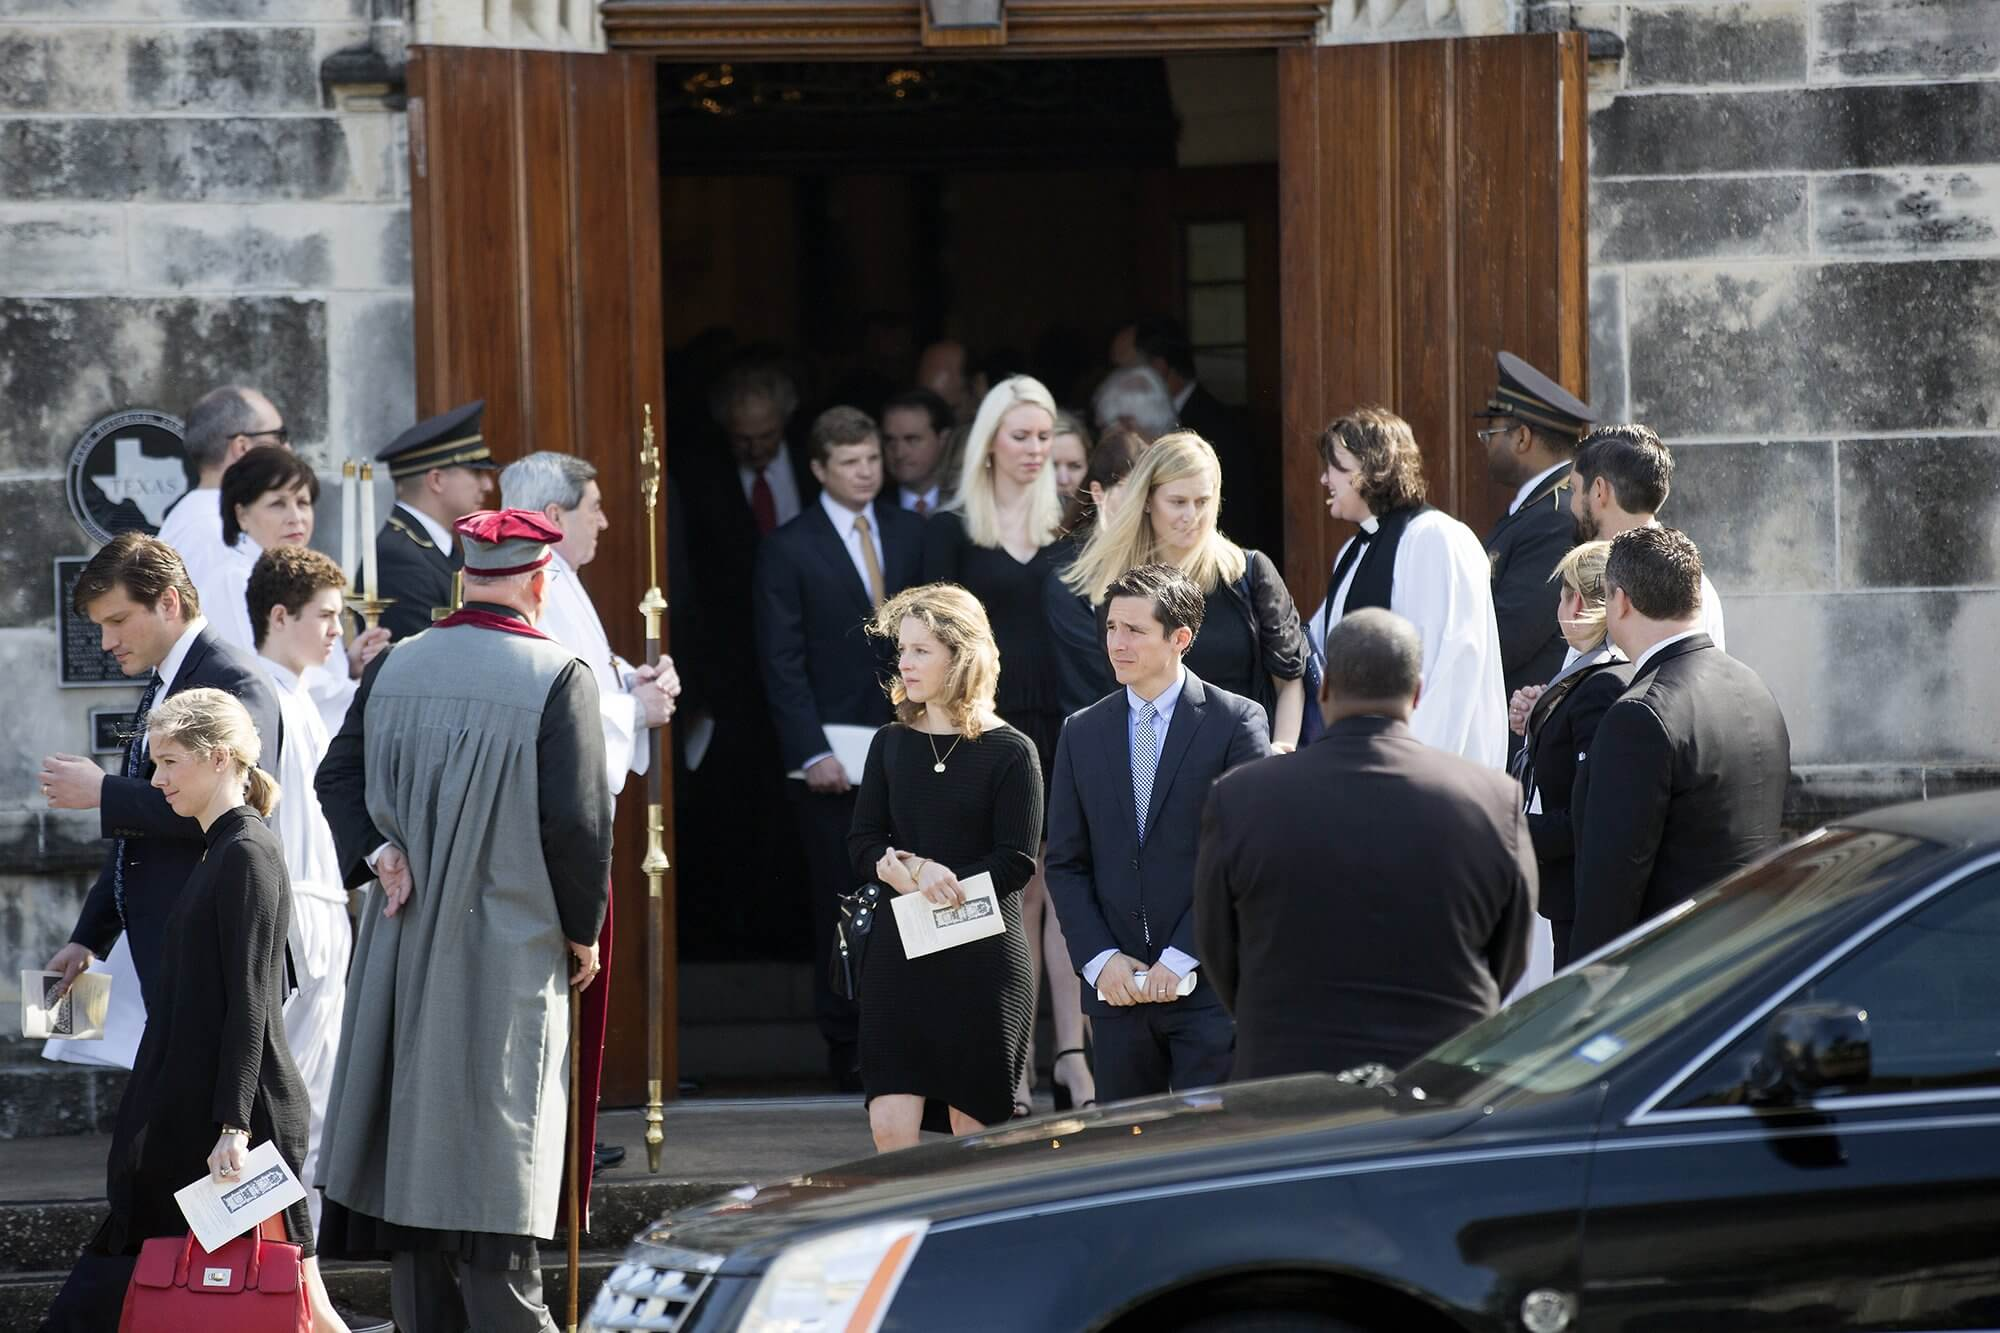 Mourners leave the memorial service for Denton A. Cooley, M.D., in Houston on Nov. 28, 2016. (Photo: Cody Duty)